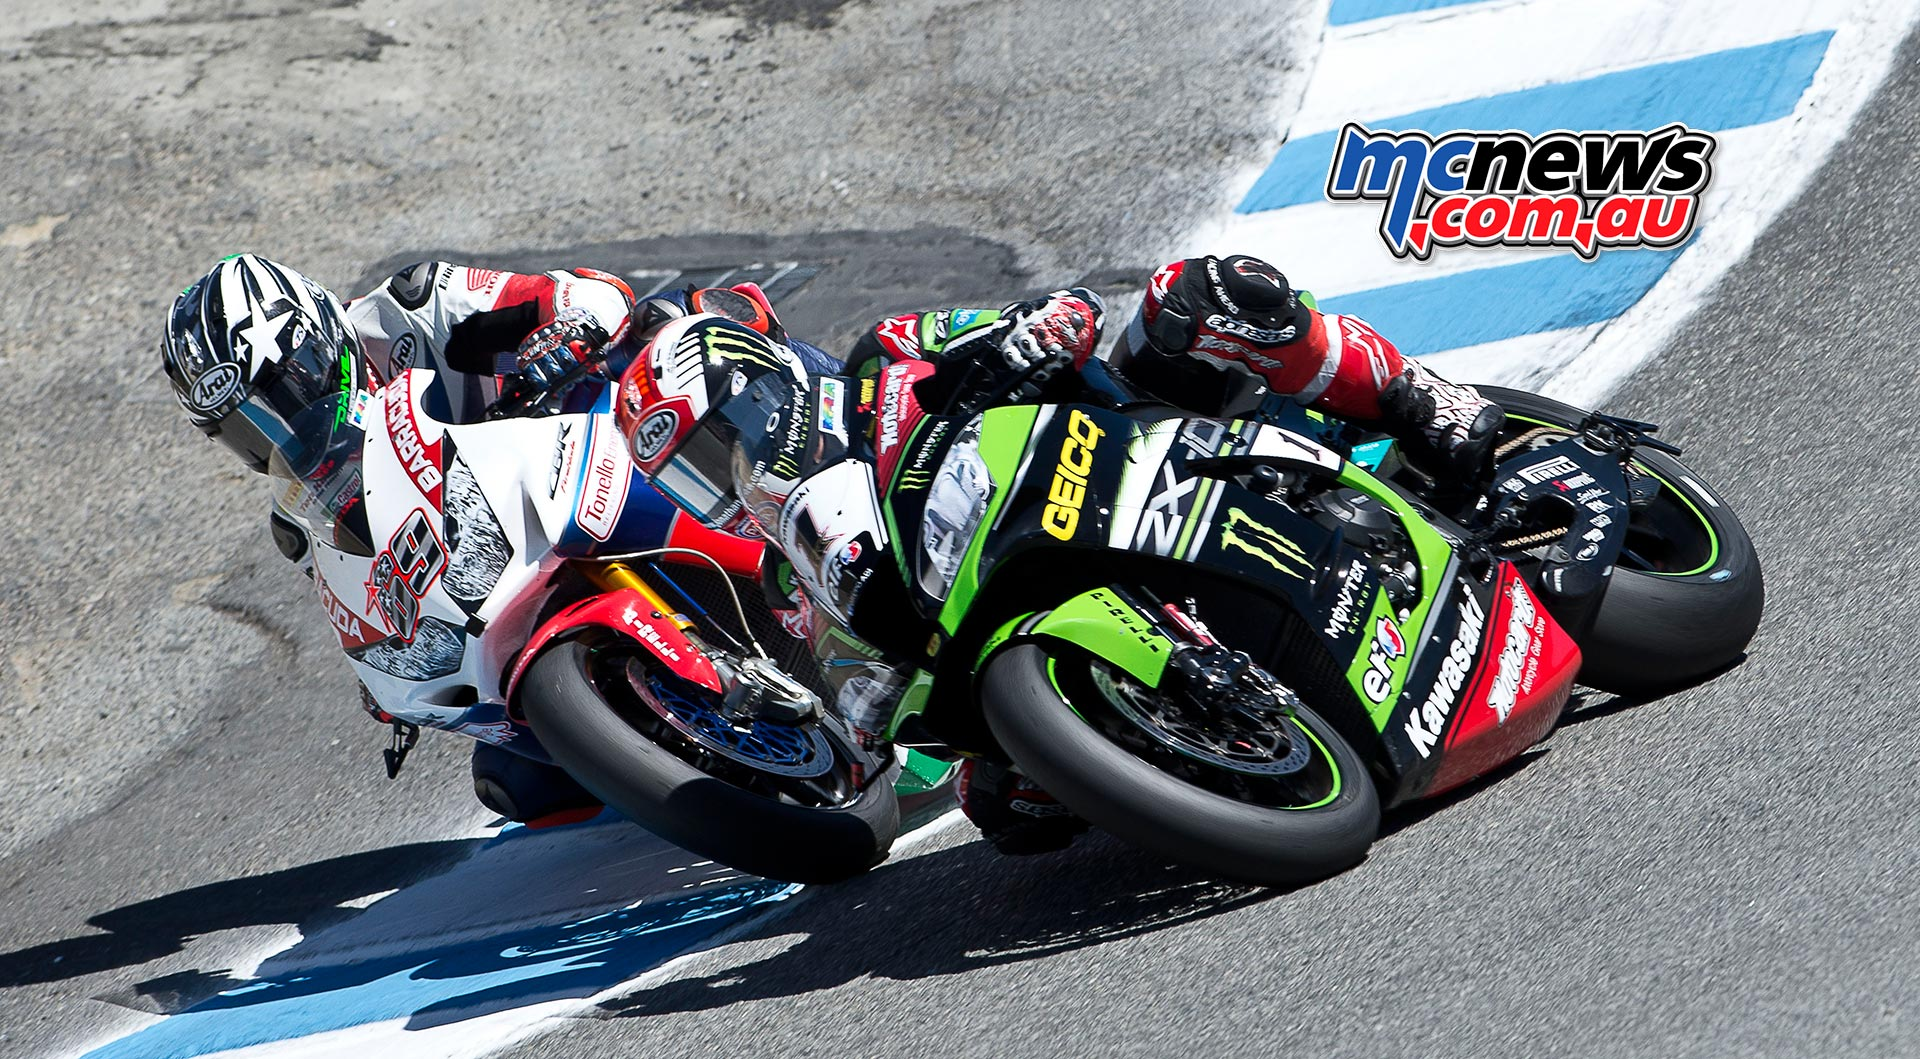 Nicky Hayden and Jonathan Rea